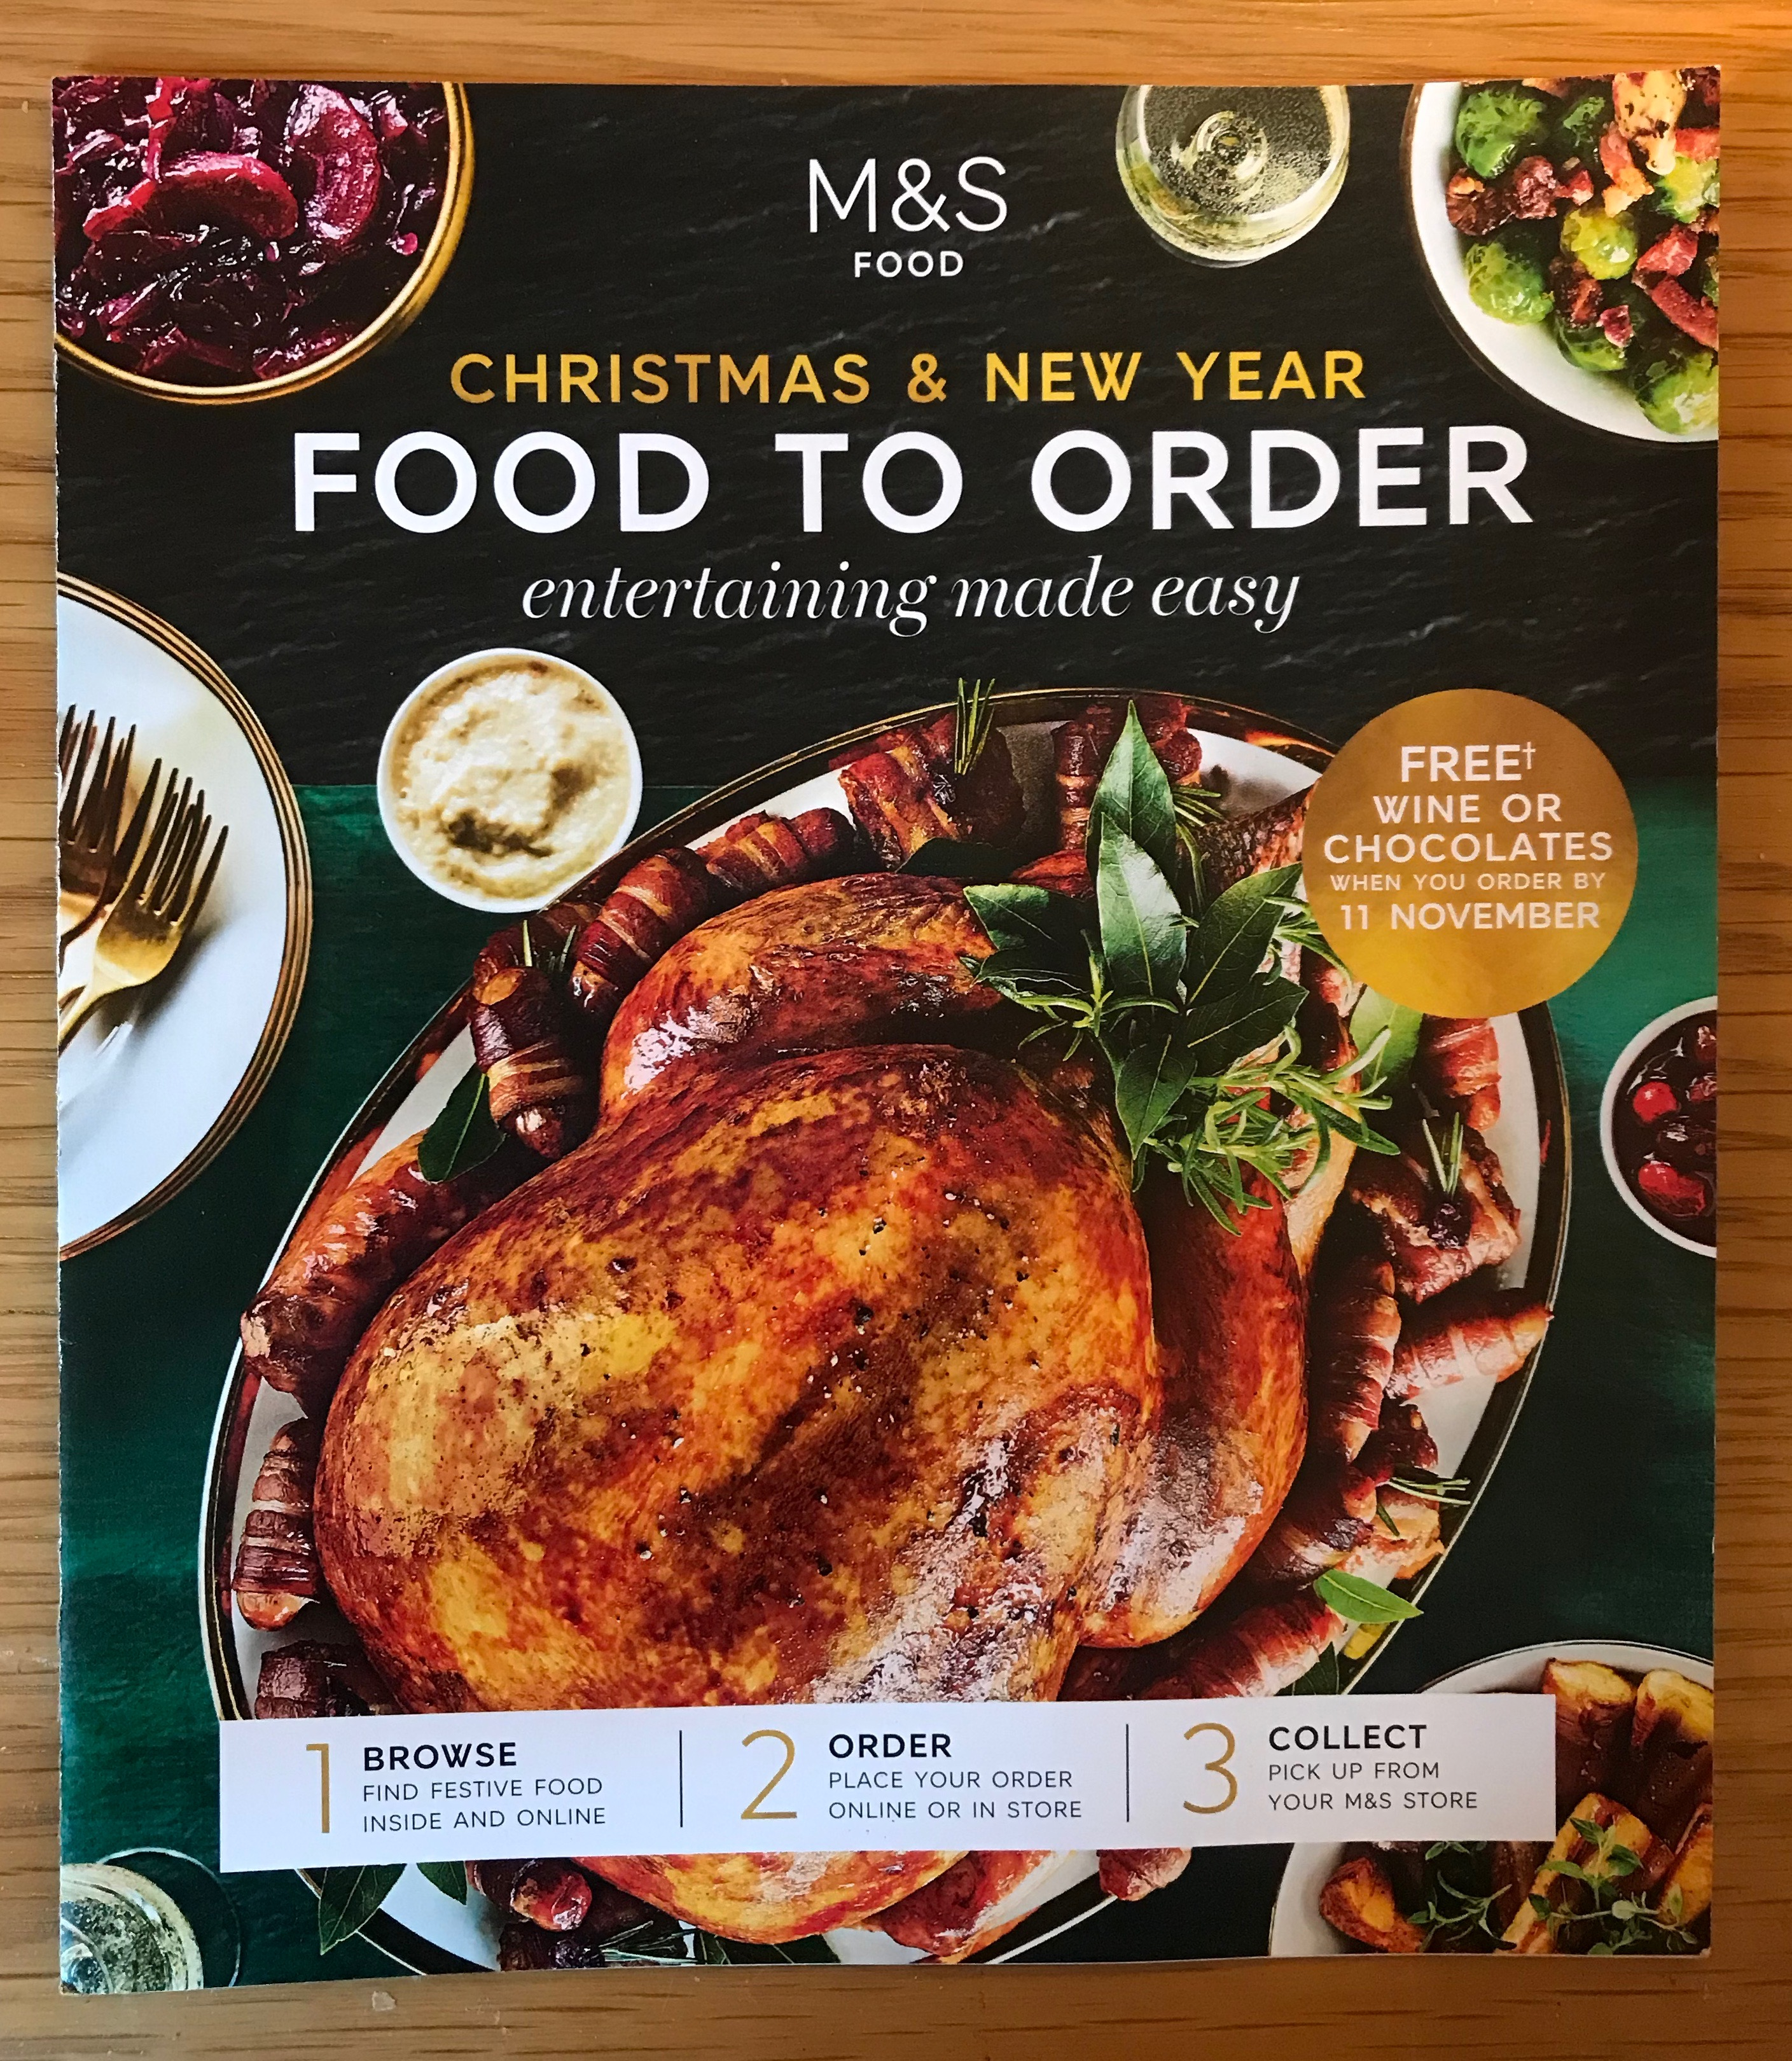 2018 Marks and Spencer Christmas and New Year Food Brochure